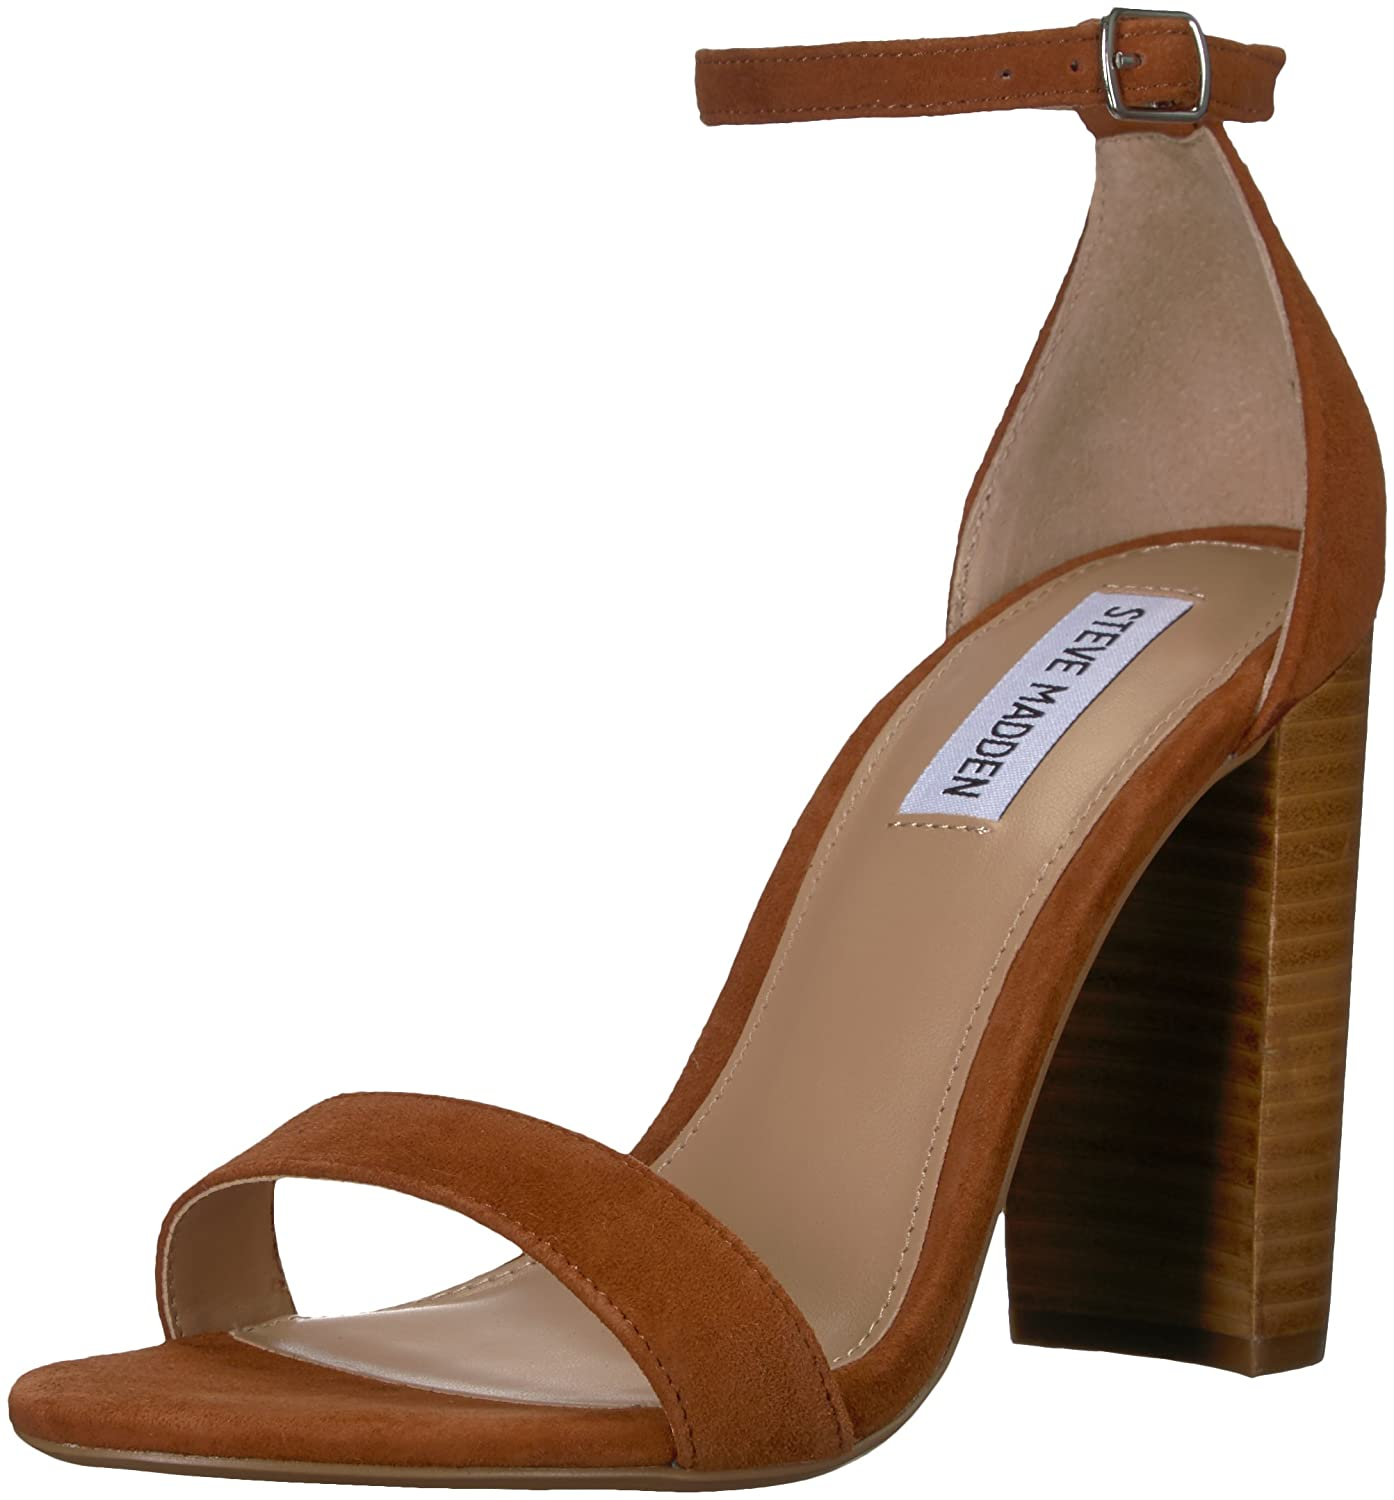 Steve Toe Madden Womens Carrson Open Toe Chestnut Special Occasion US Suede Ankle Strap Sandals B07BLJKMXD 7.5 B(M) US|Chestnut Multi Chestnut Multi 7.5 B(M) US, Weekend Charm:17fdca94 --- alumnibooster.club